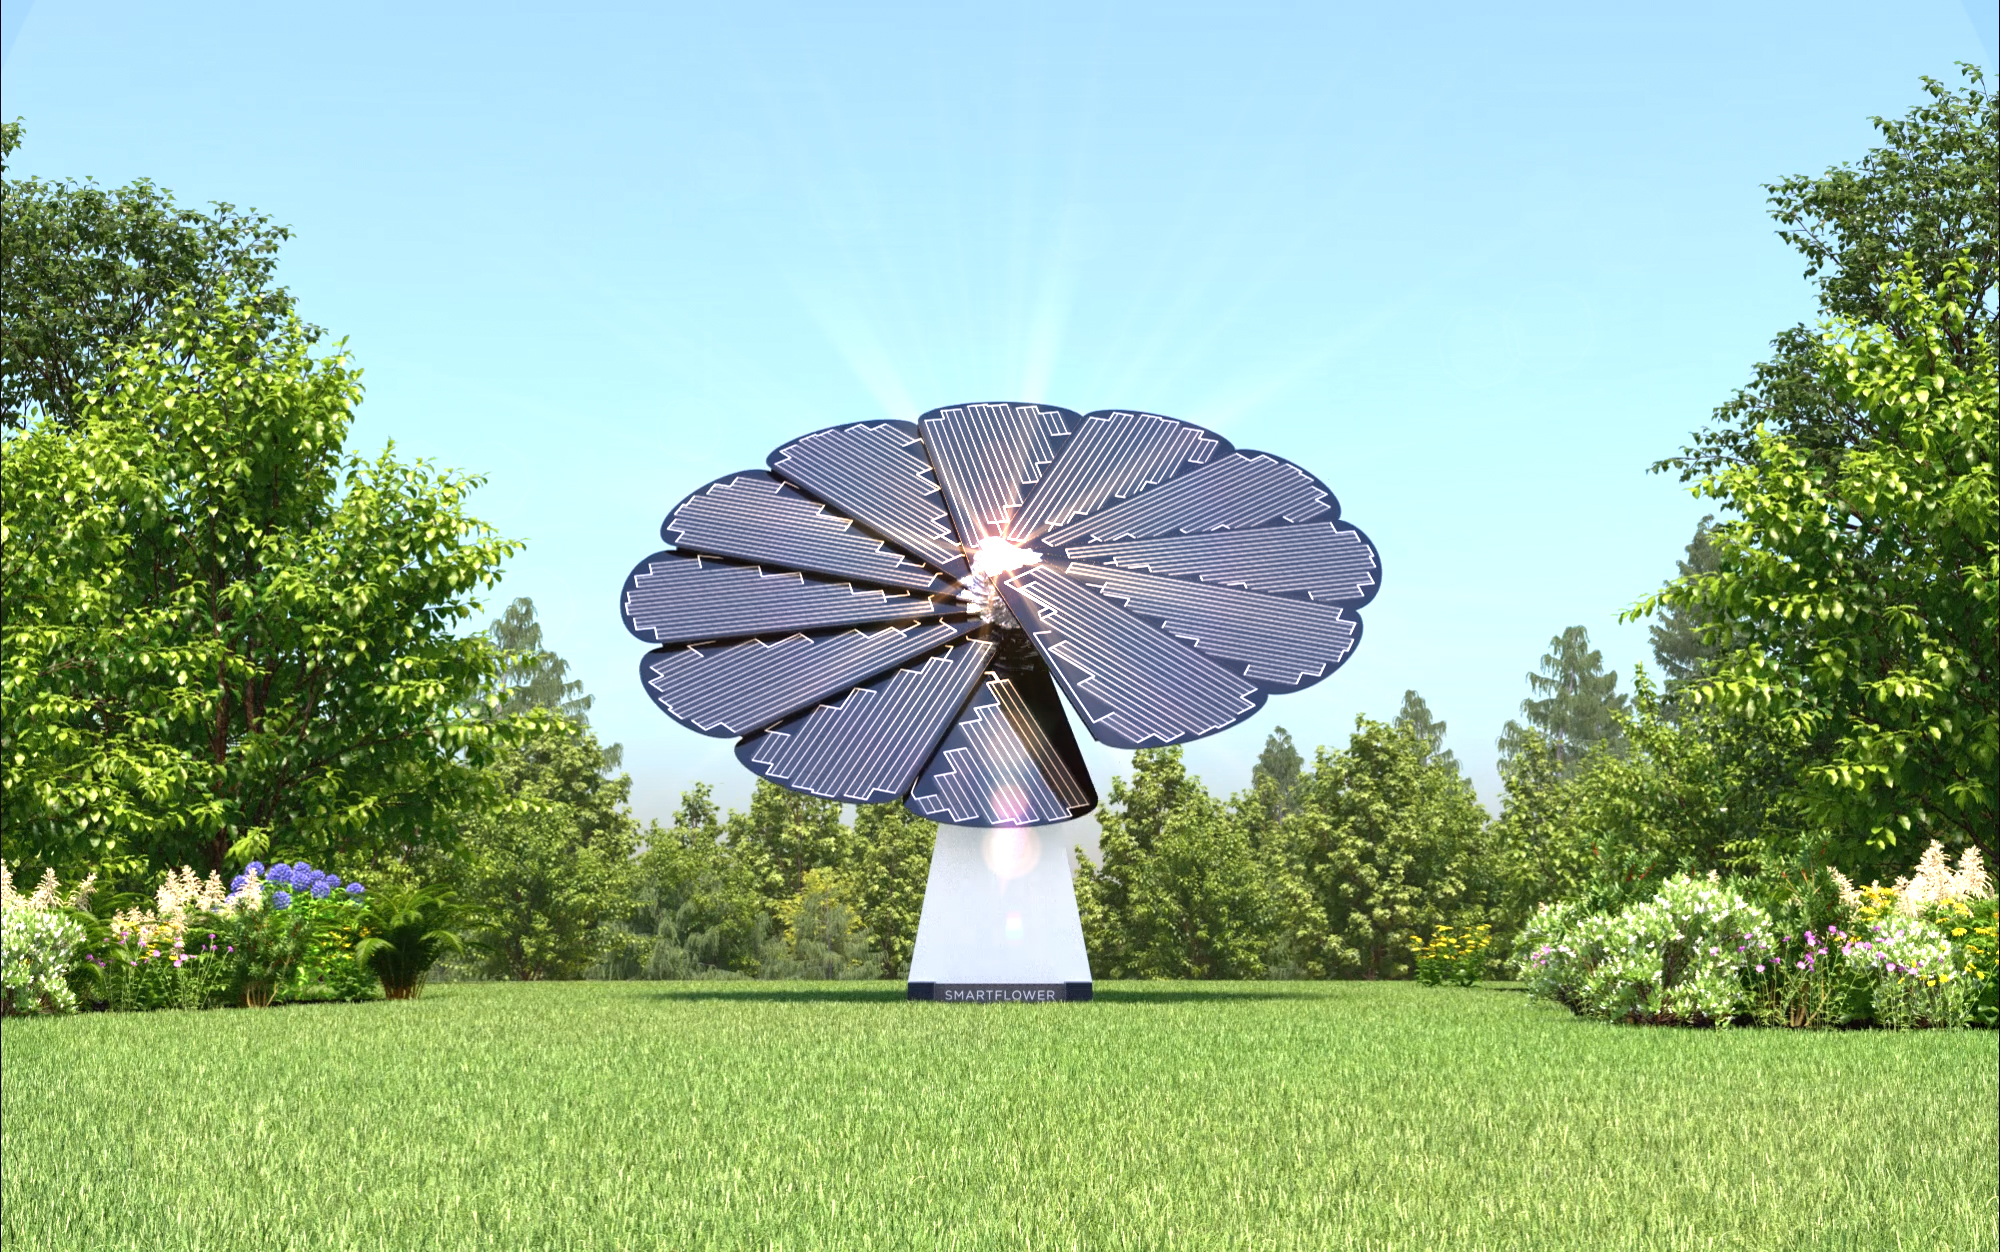 A Single SmartFlower Solar Panel Stands in a Clearing Framed by Trees and Flowers